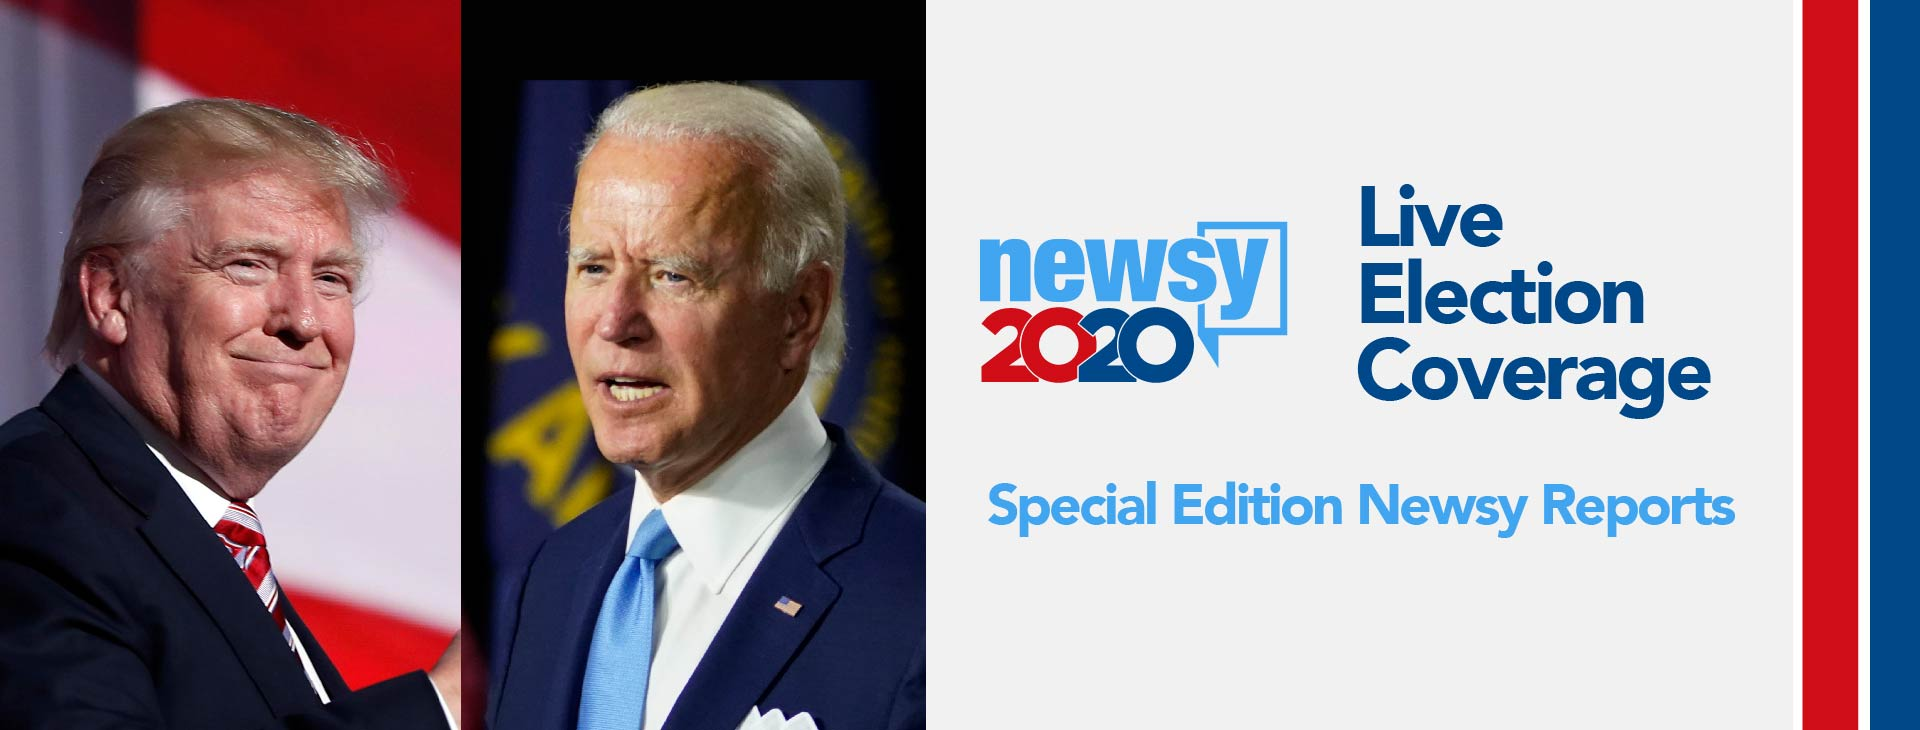 Newsy 2020: Special Edition Newsy Reports